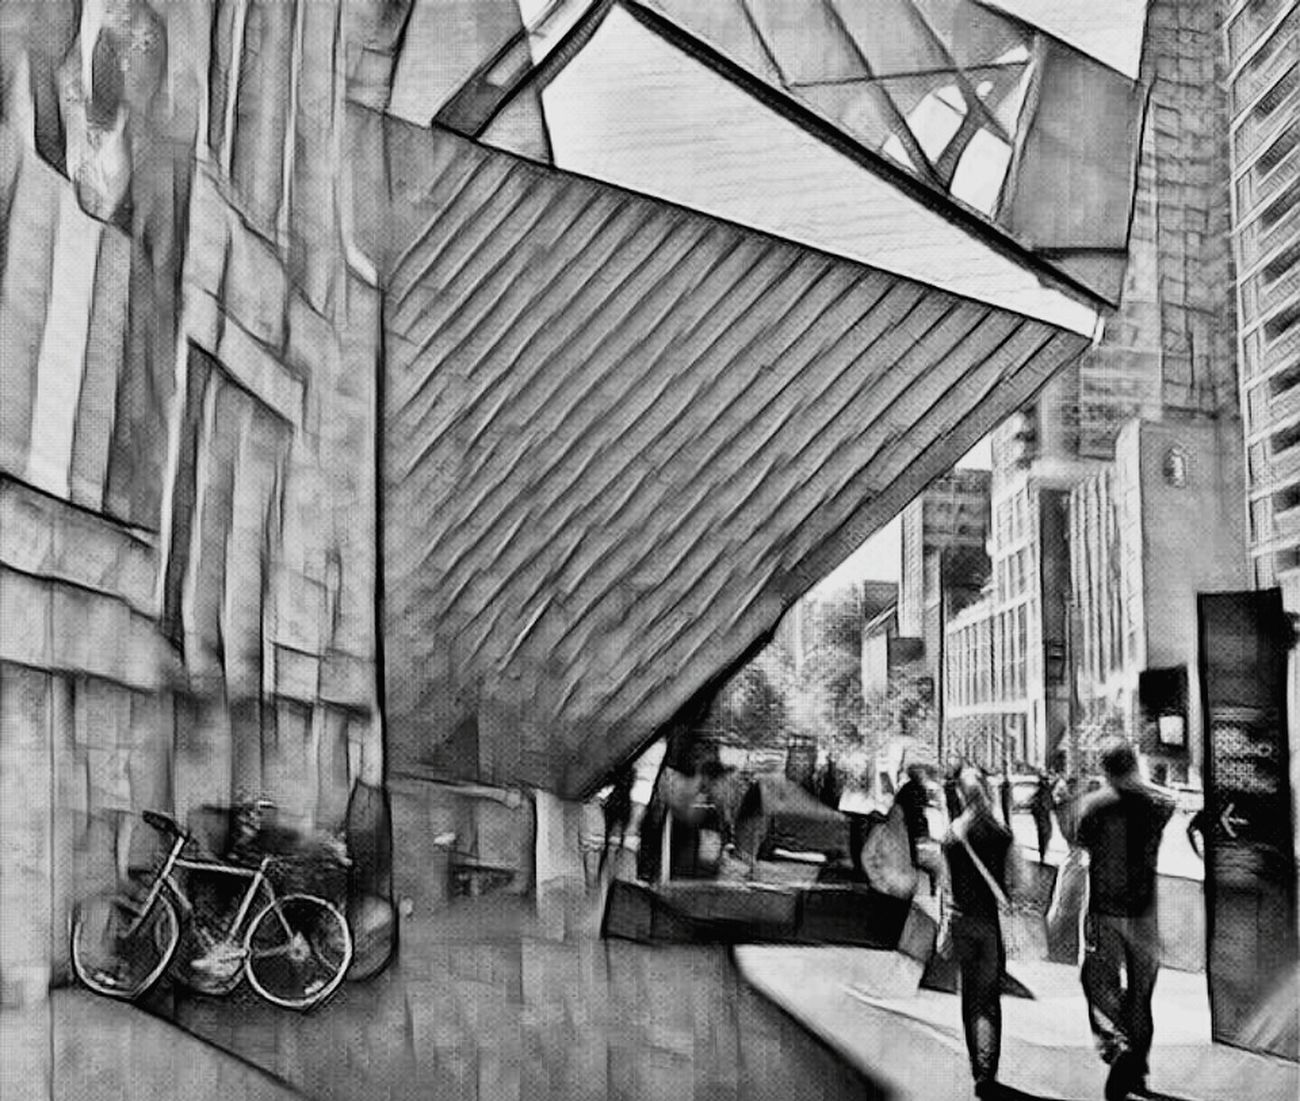 Toronto Building Exterior Shadows & Lights City Blackandwhite EyeEm Best Shots Architecture Art Photography